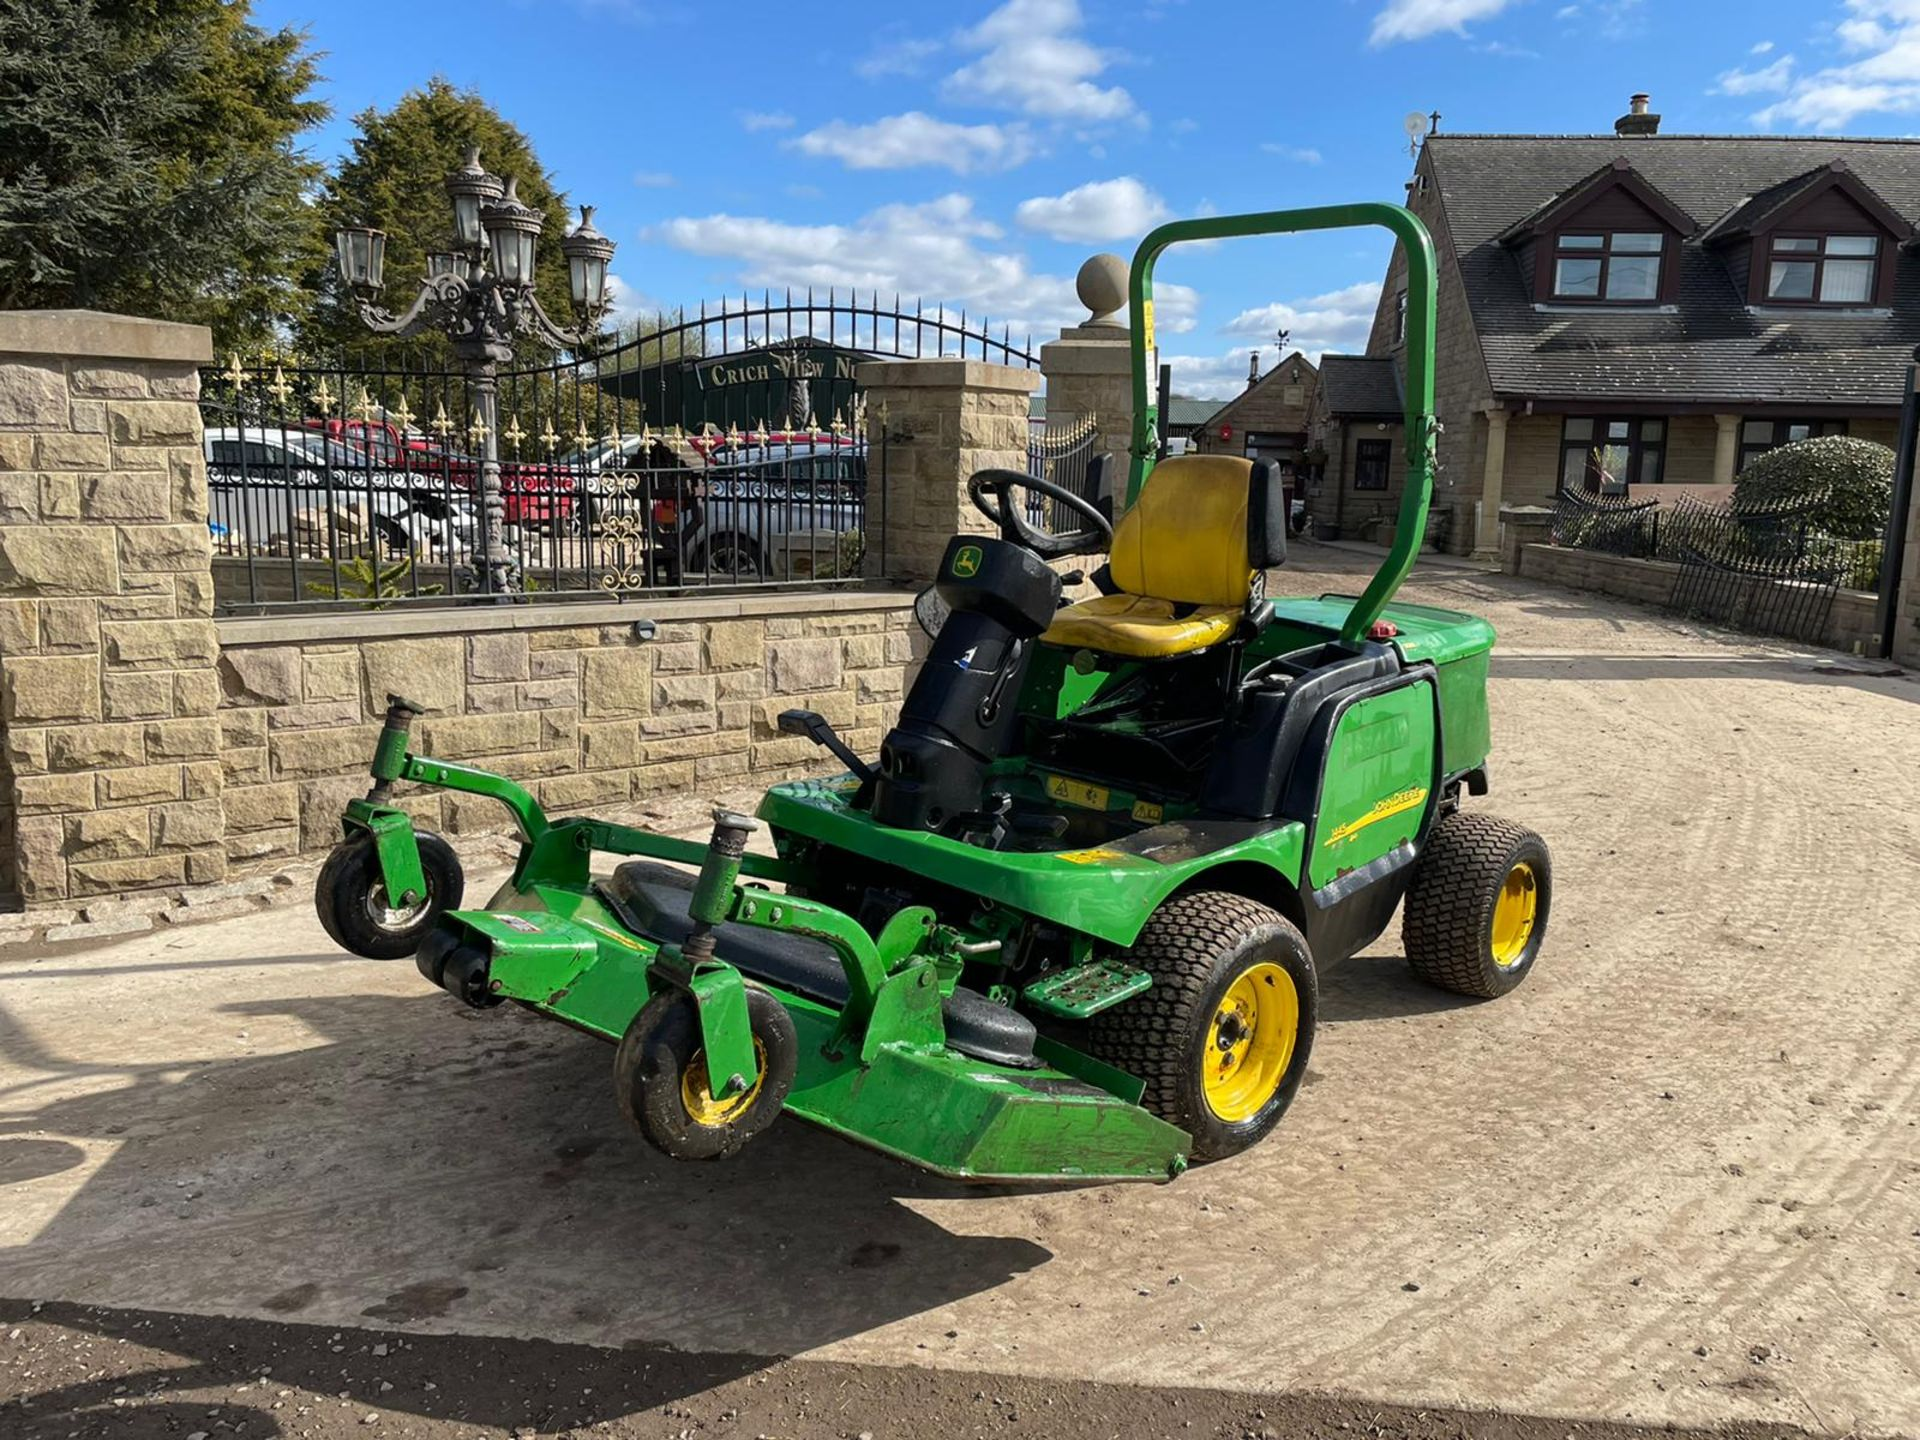 JOHN DEERE 1445 RIDE ON MOWER, RUNS DRIVES AND CUTS, IN USED BUT GOOD CONDITION *NO VAT* - Image 5 of 9